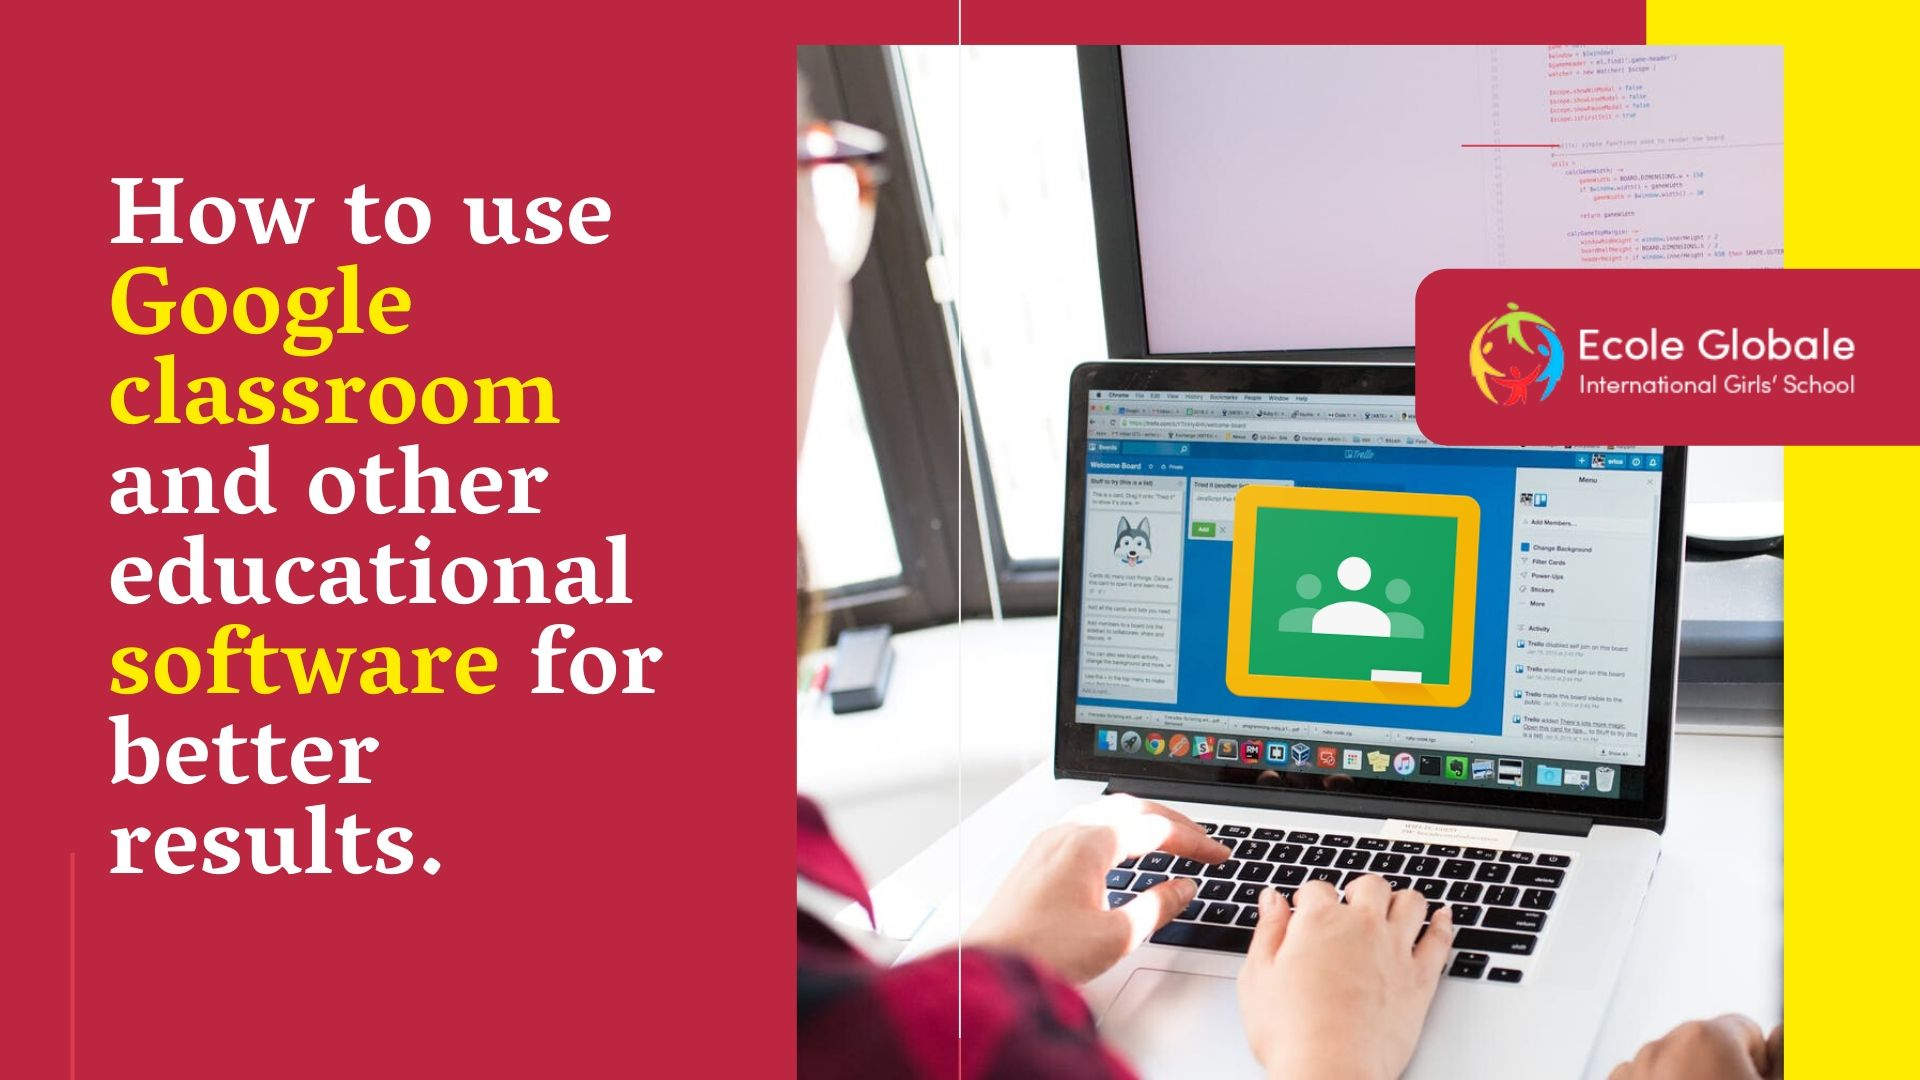 How to use Google classroom and other educational software for better results